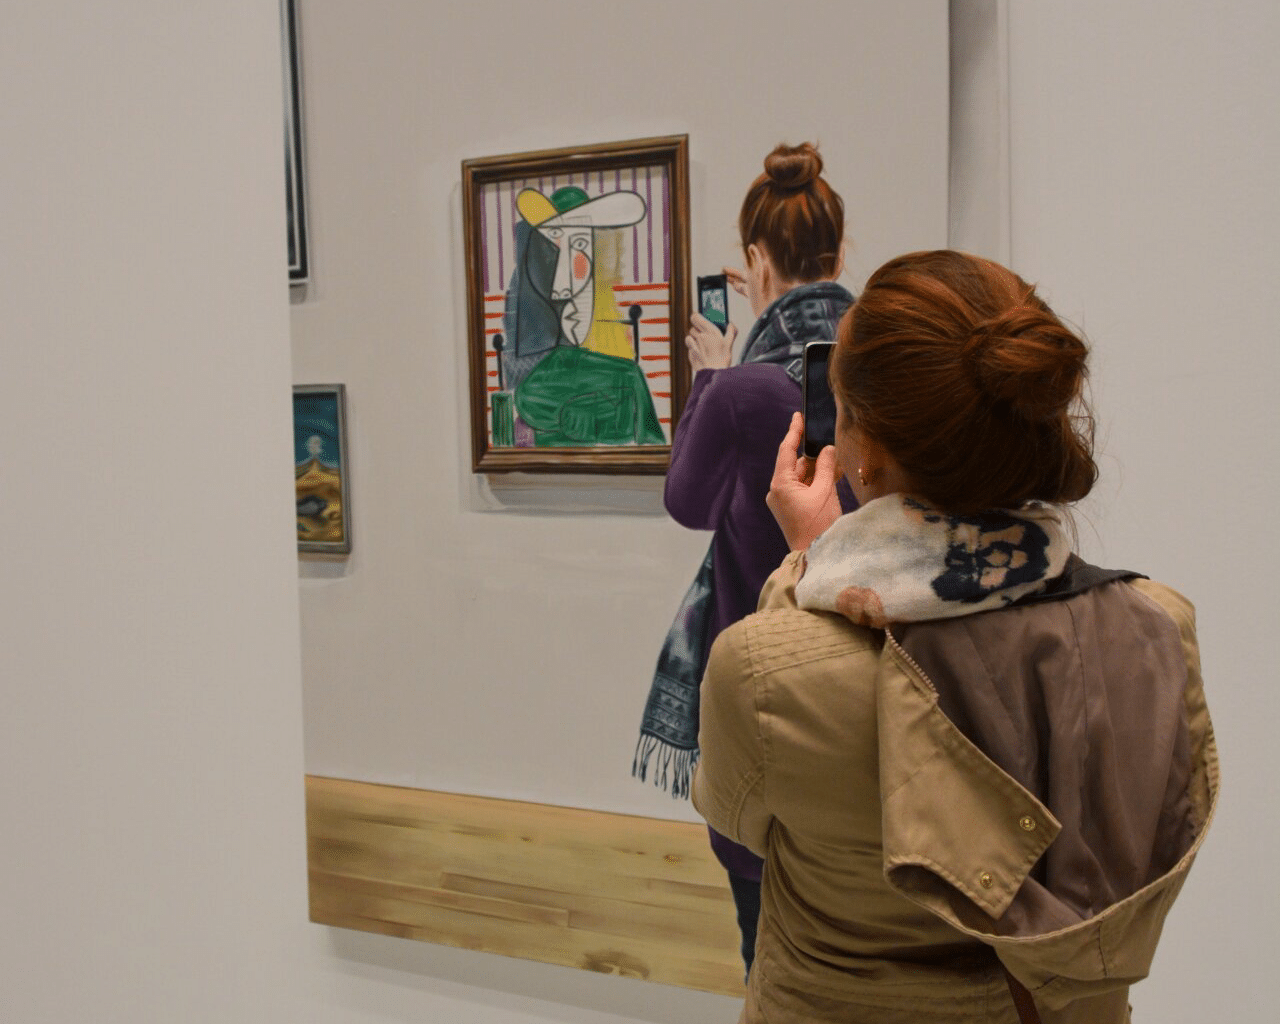 woman taking pictures in a gallery